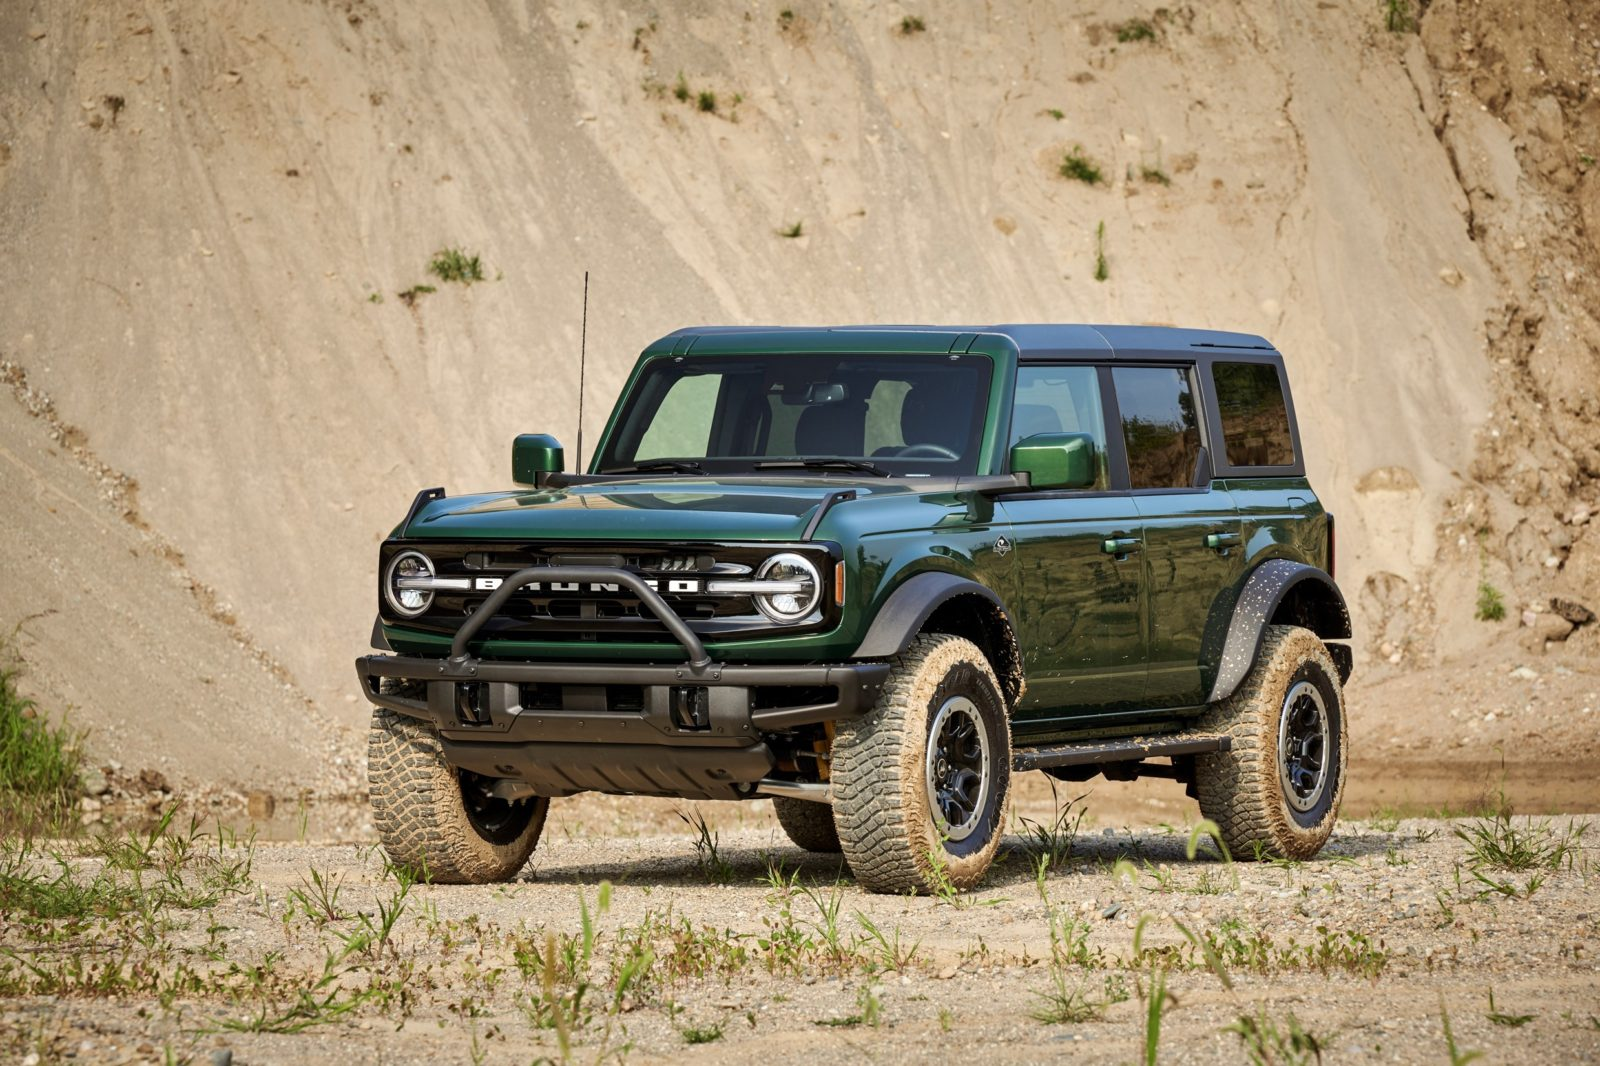 2022-ford-bronco-ordering-starts-october-13th,-msrp-reportedly-kicks-off-at-$29,300